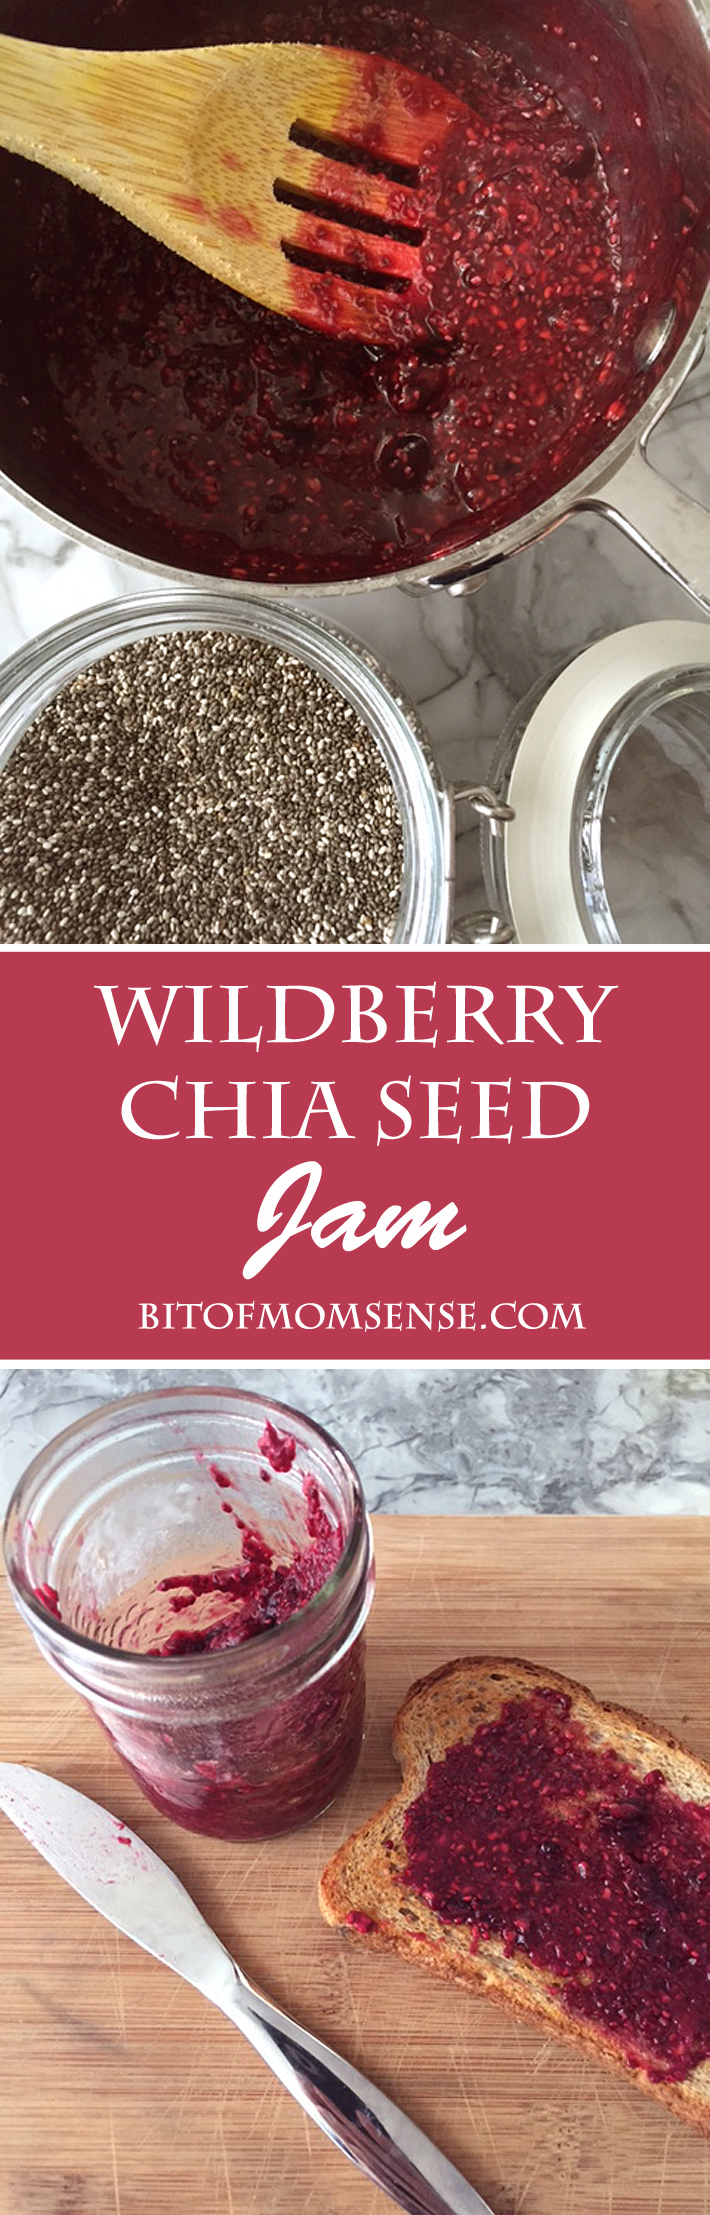 wildberry-chia-seed-jam